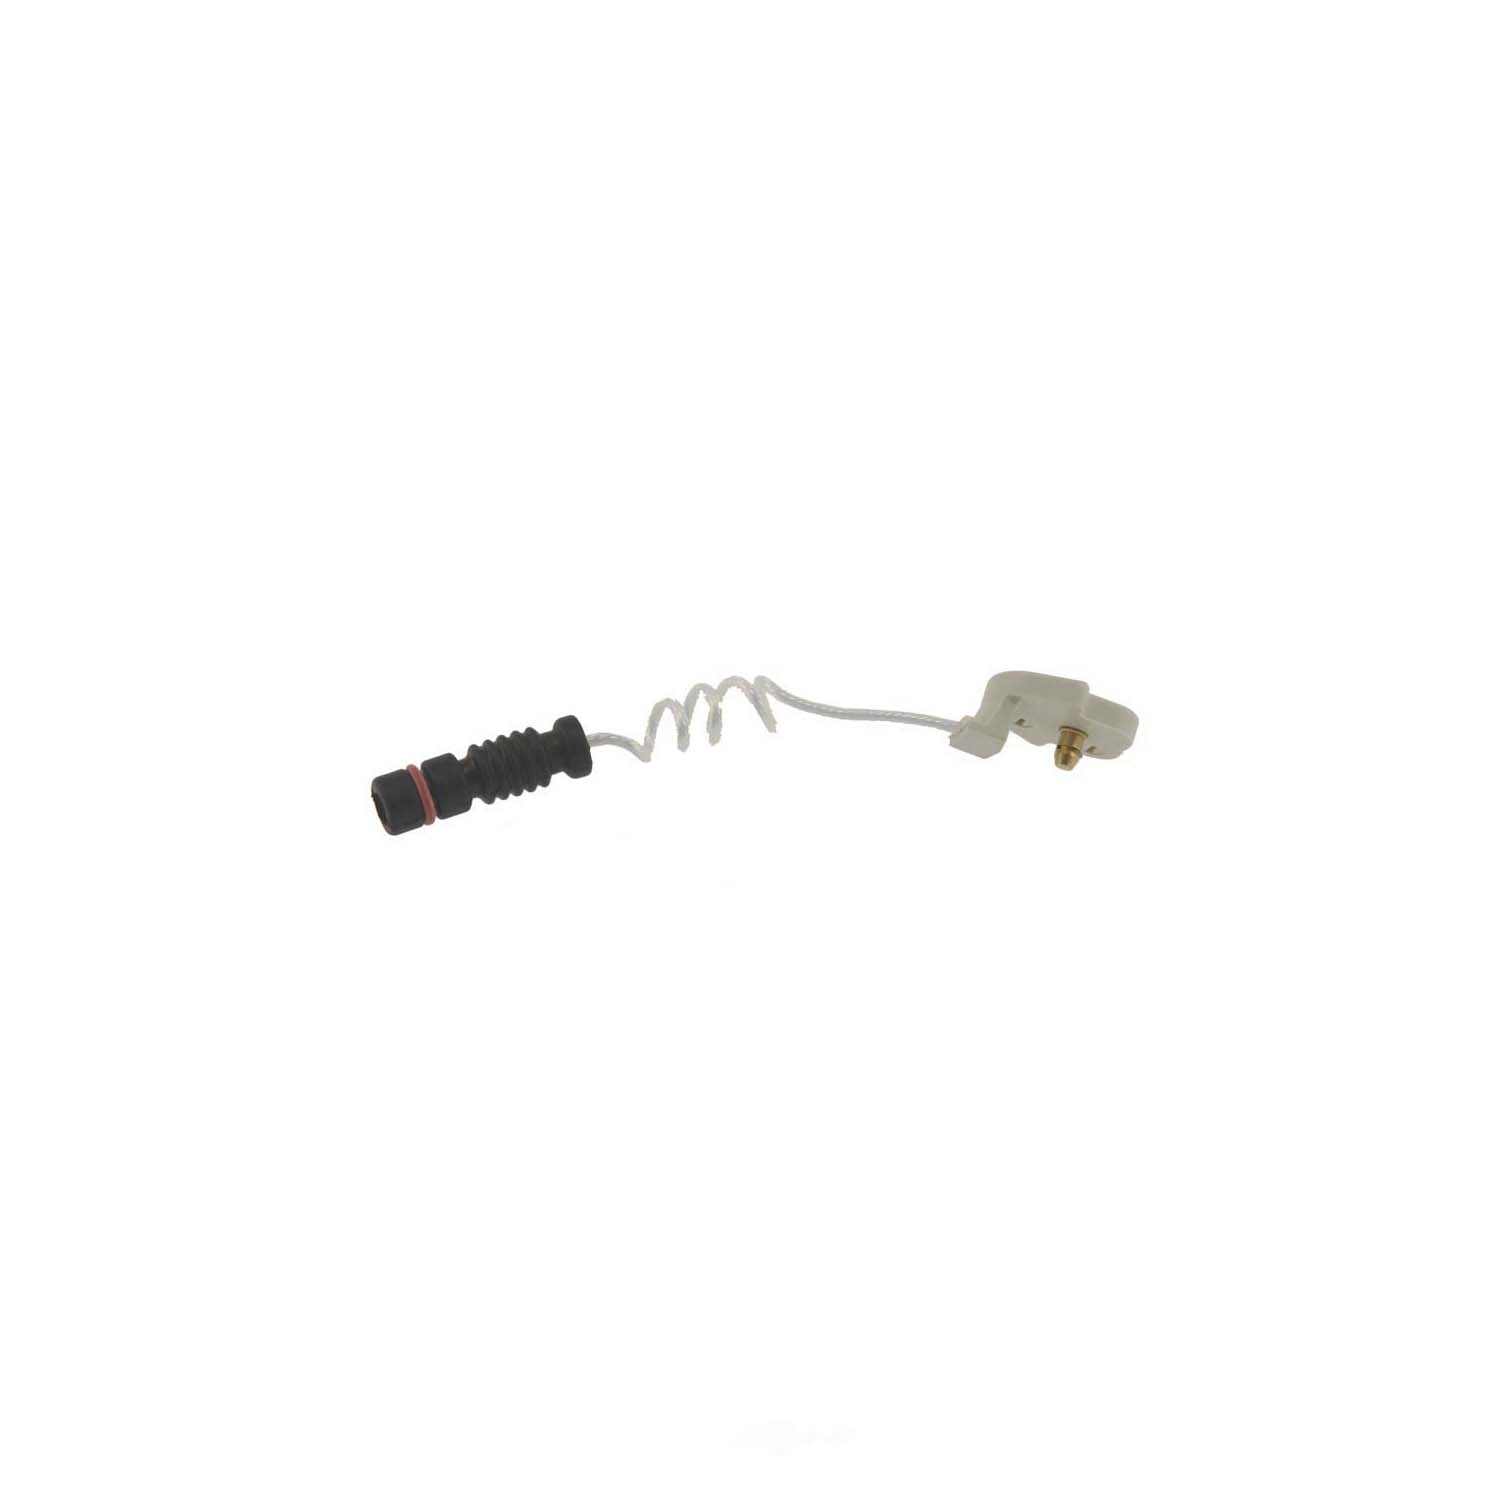 CARLSON QUALITY BRAKE PARTS - Disc Brake Pad Electronic Wear Sensor - CRL 19003